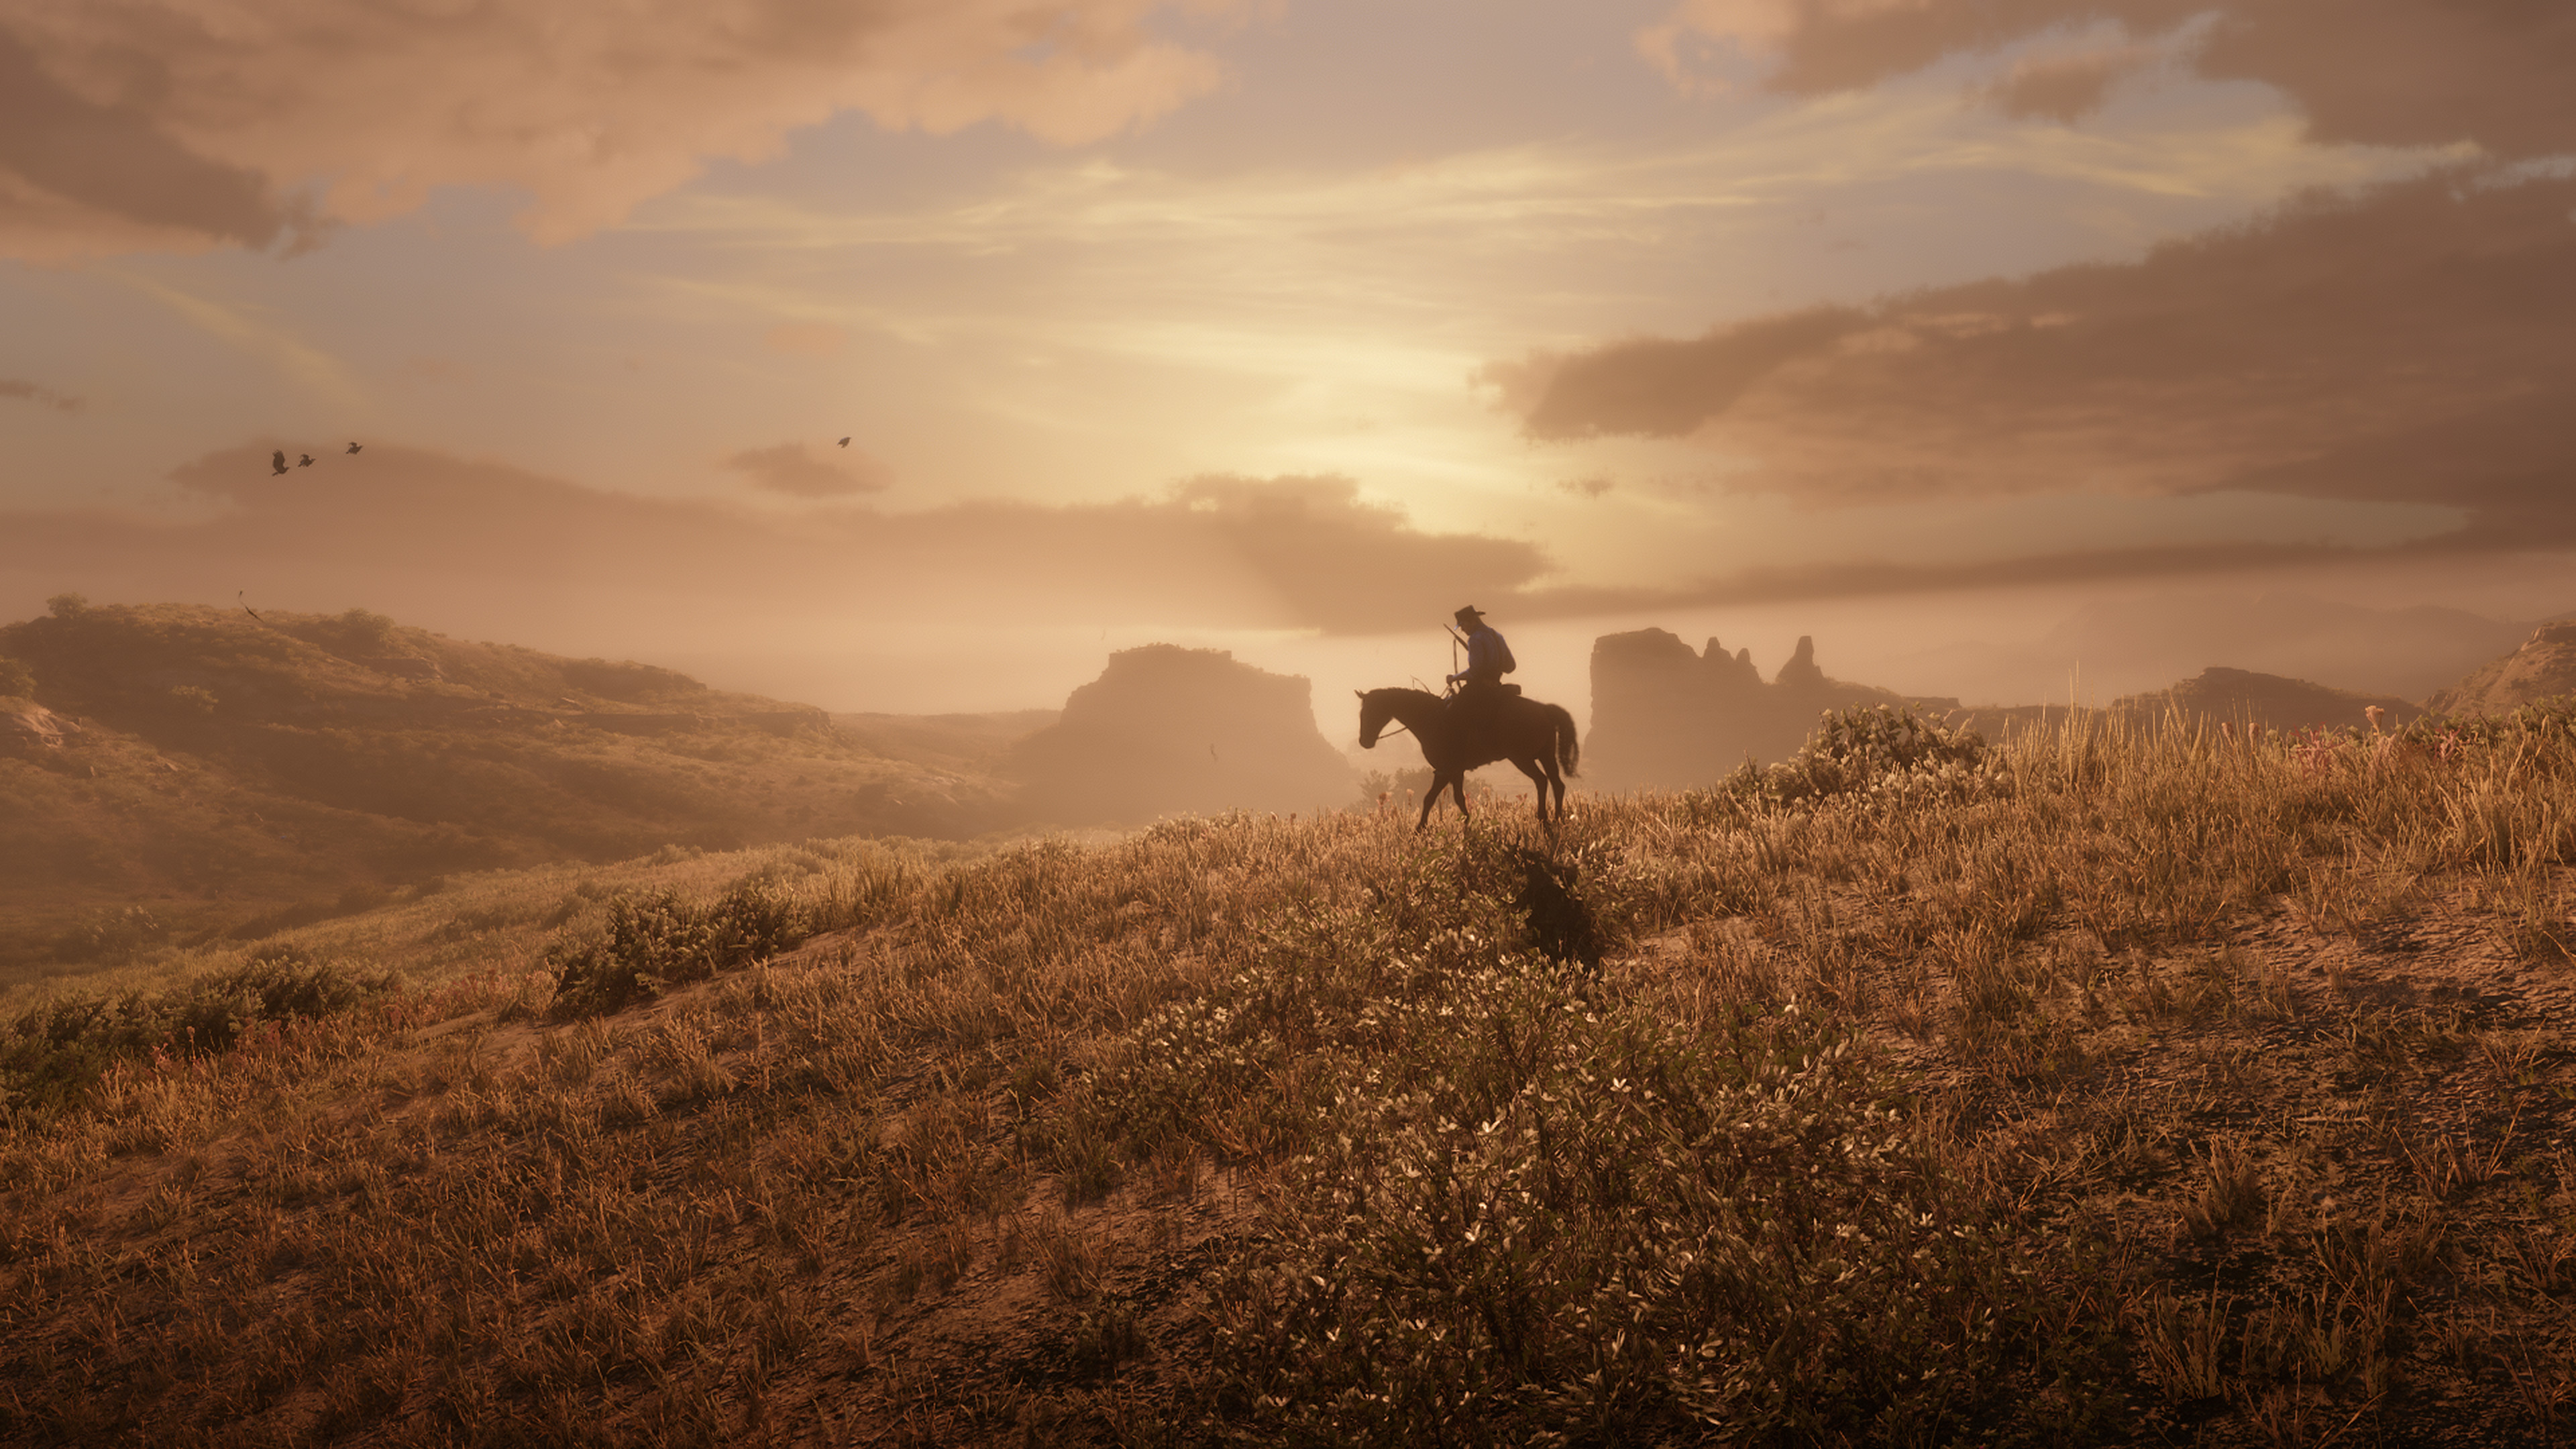 Hunting paradise in a haunted wild western world (or playing Red Dead Redemption 2, listening to Mumford and Sons, and watching The Ballad of Buster Scruggs)